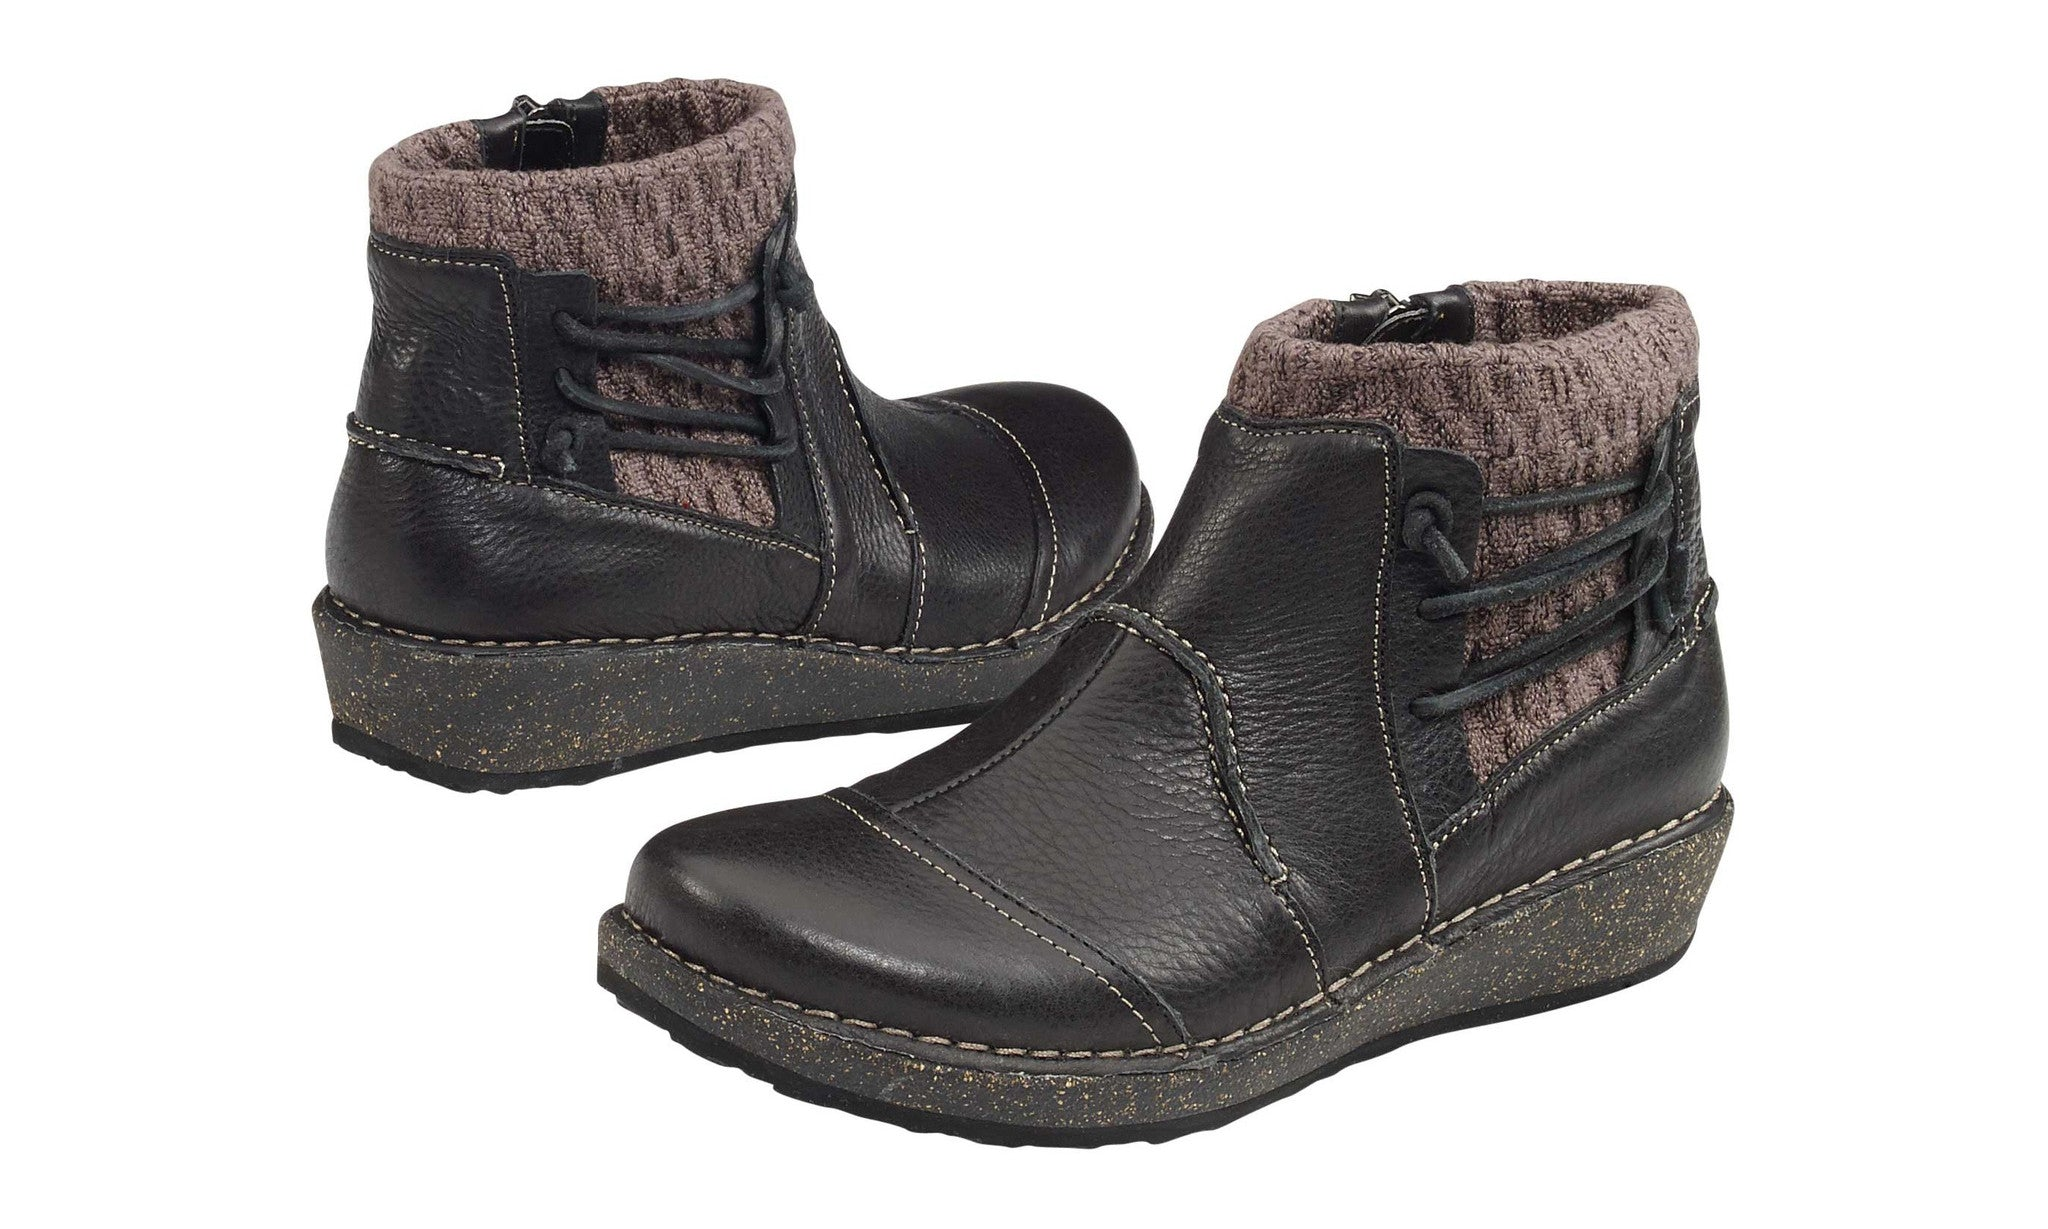 82f86f948812 Tessa Short Sweater Boot - Women s – EC Orthotics